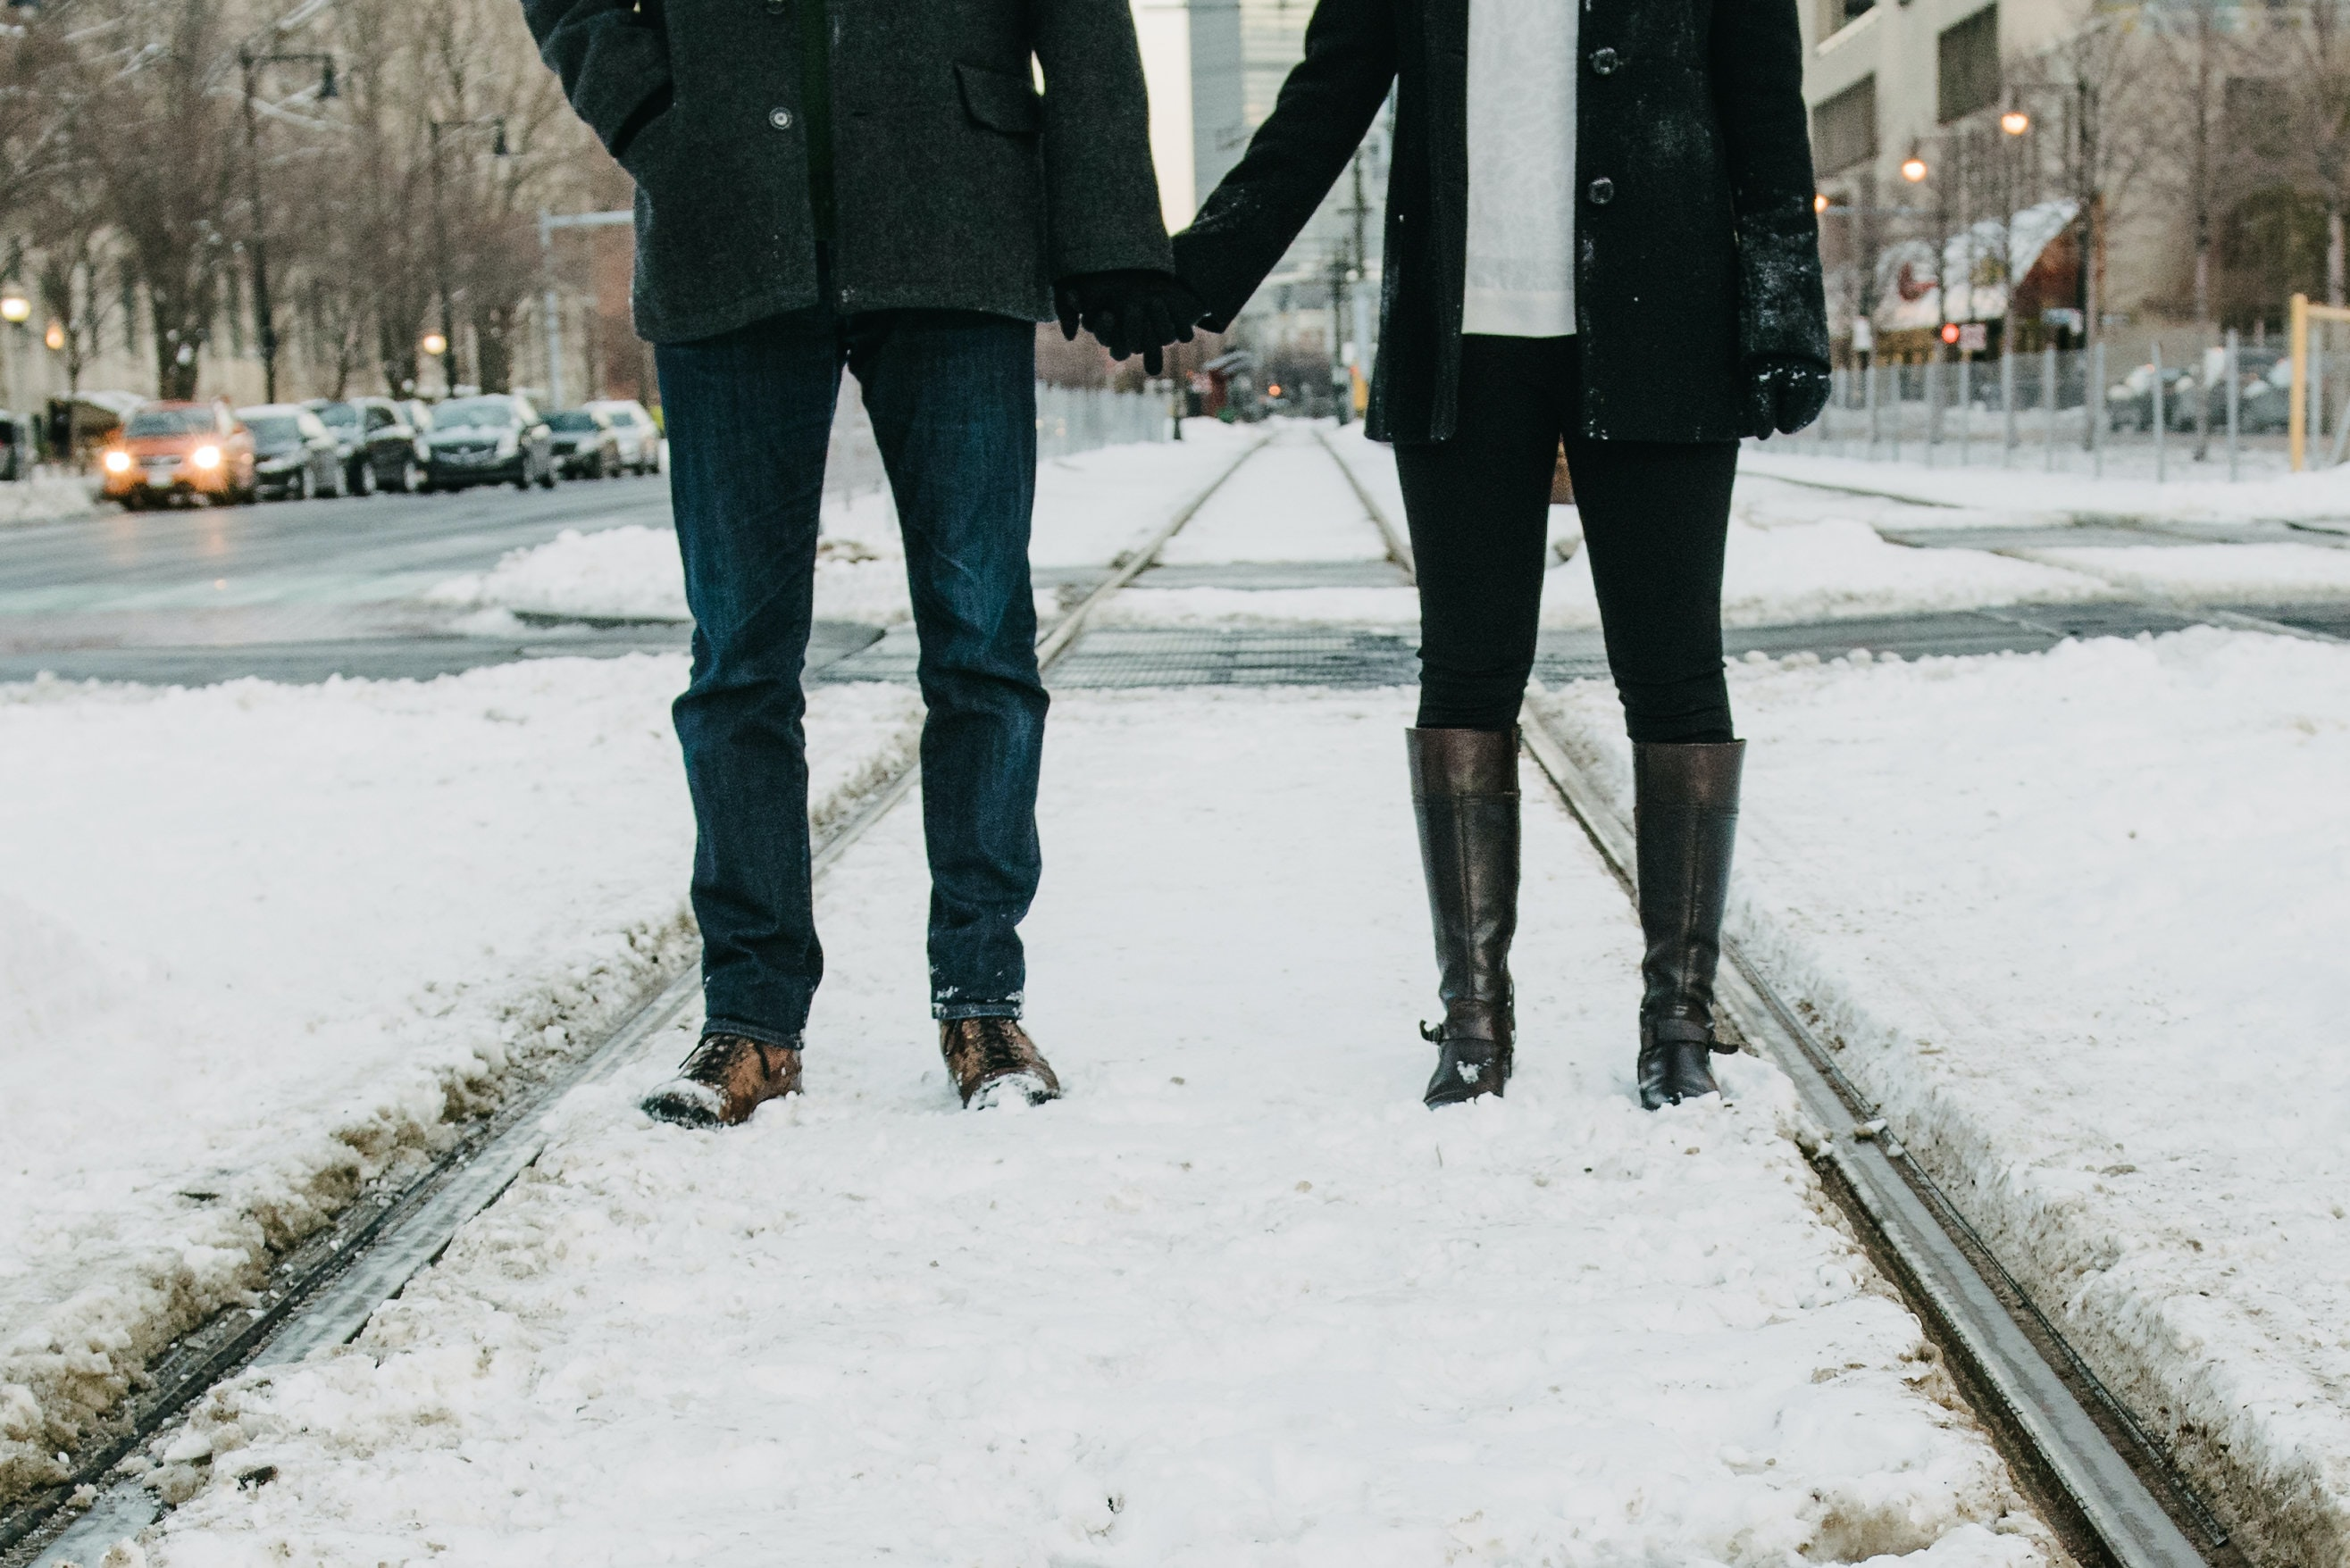 On train tracks covered in snow, two lovers stand holding hands